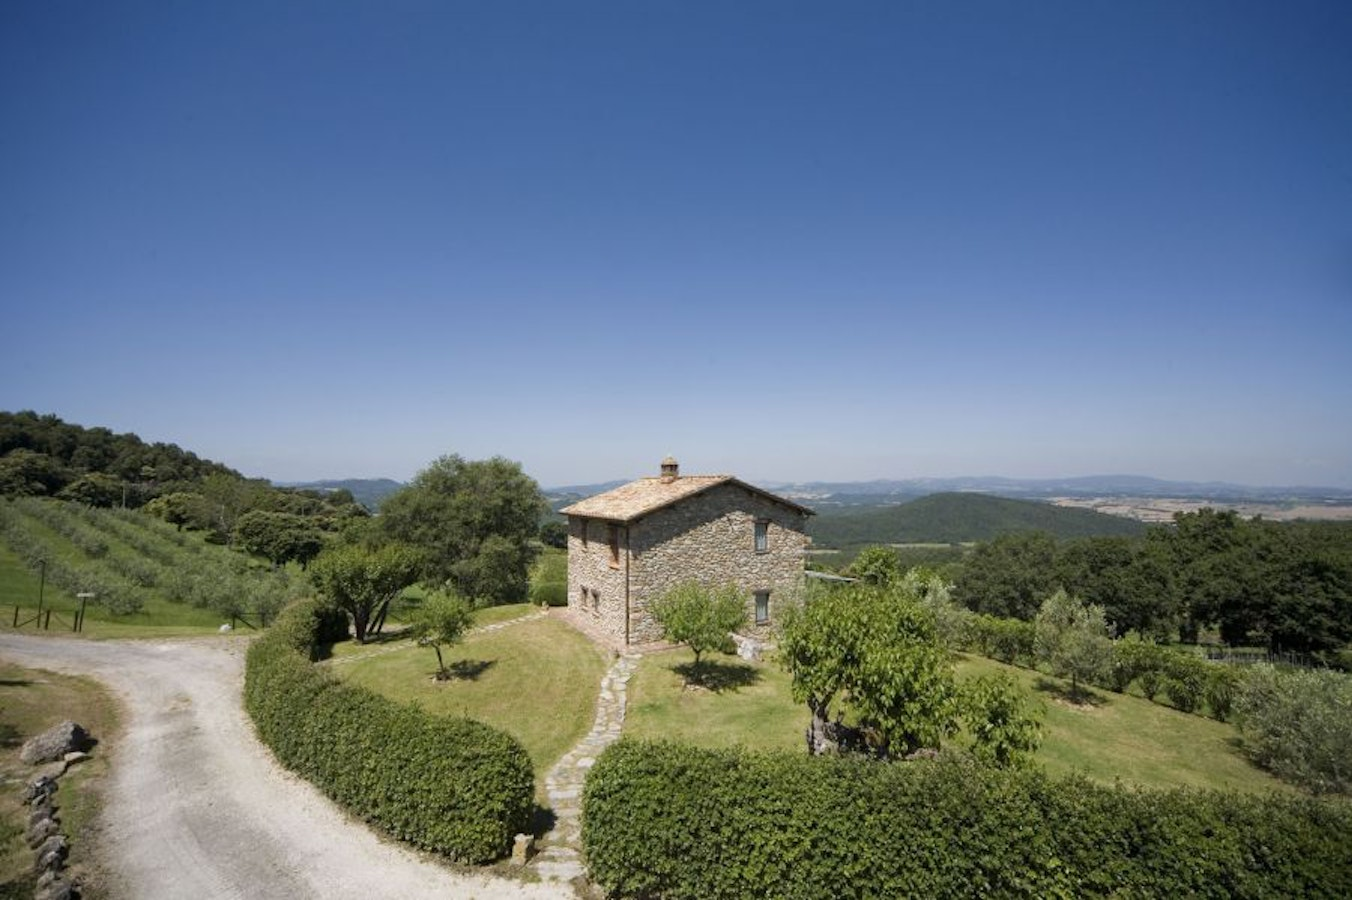 Casa Vacanze Ripostena Vacation Apartments Near Siena - Tranquil photos capture the beauty of tuscanys countryside